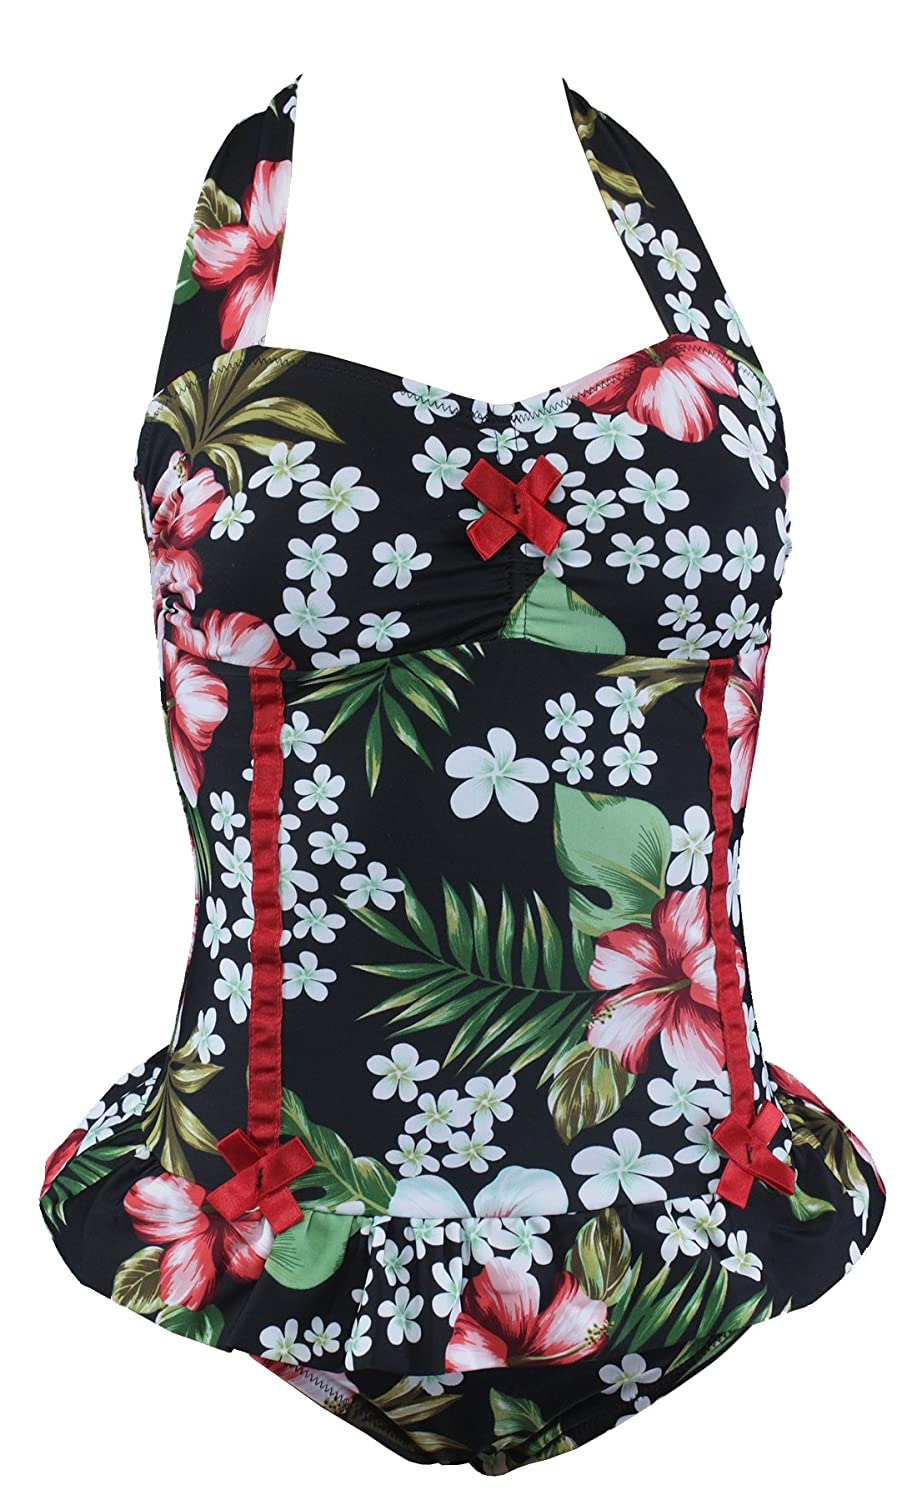 aloha beachwear gebl mter vintage style neckholder damen badeanzug tiki look hibiskus flower. Black Bedroom Furniture Sets. Home Design Ideas